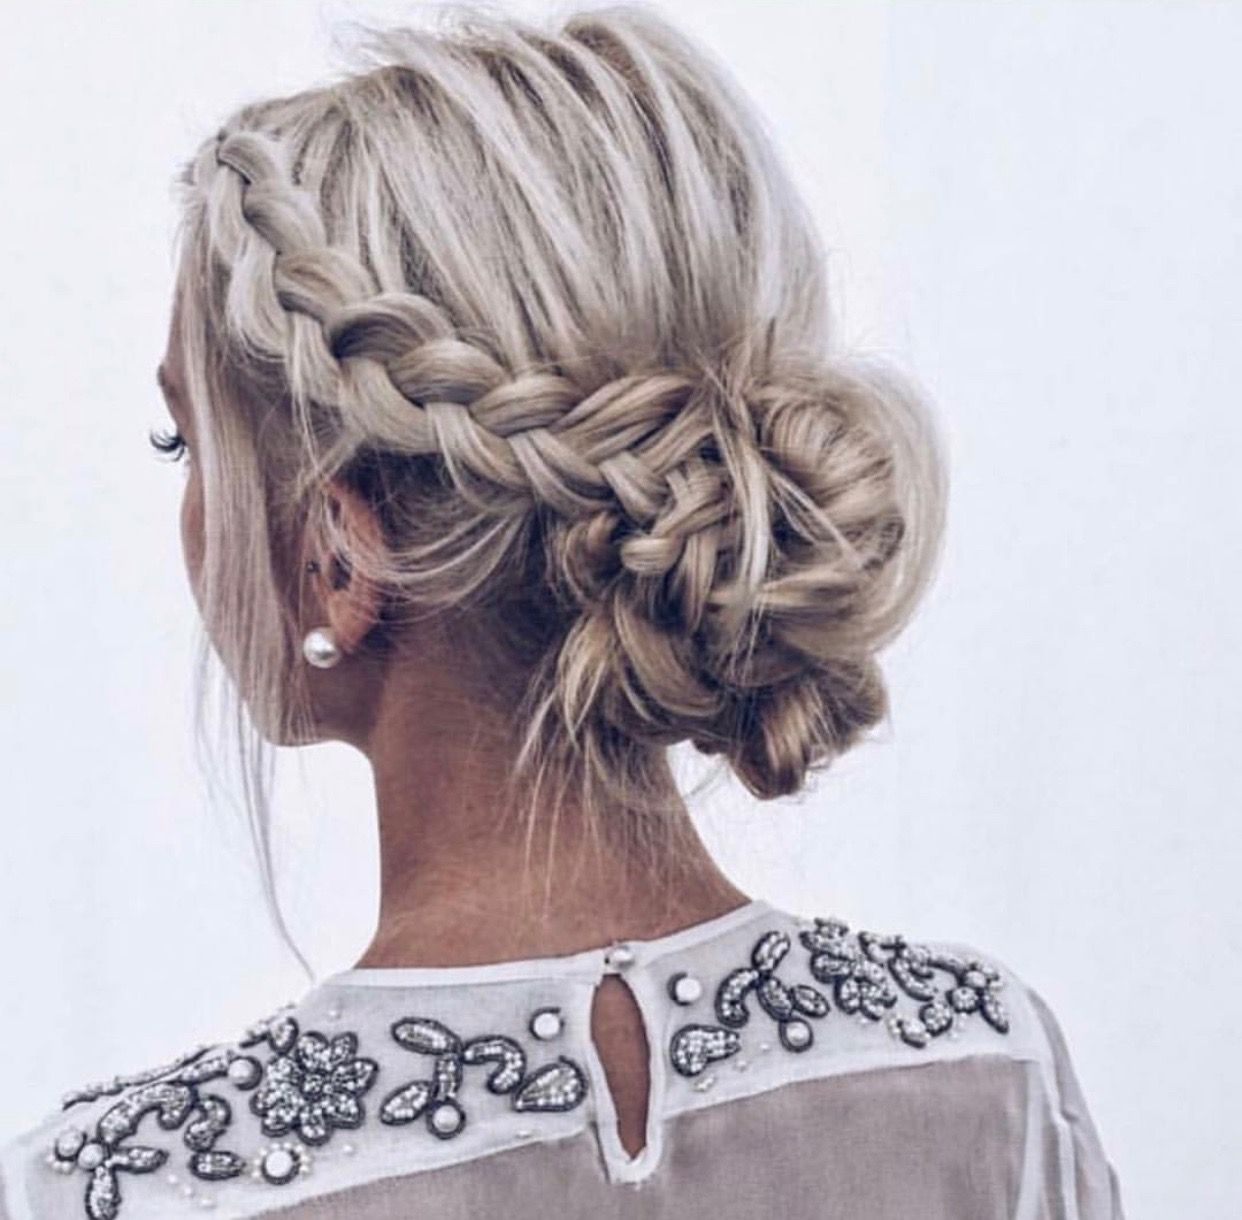 The perfect braided updo teased messy side braid fading into a low